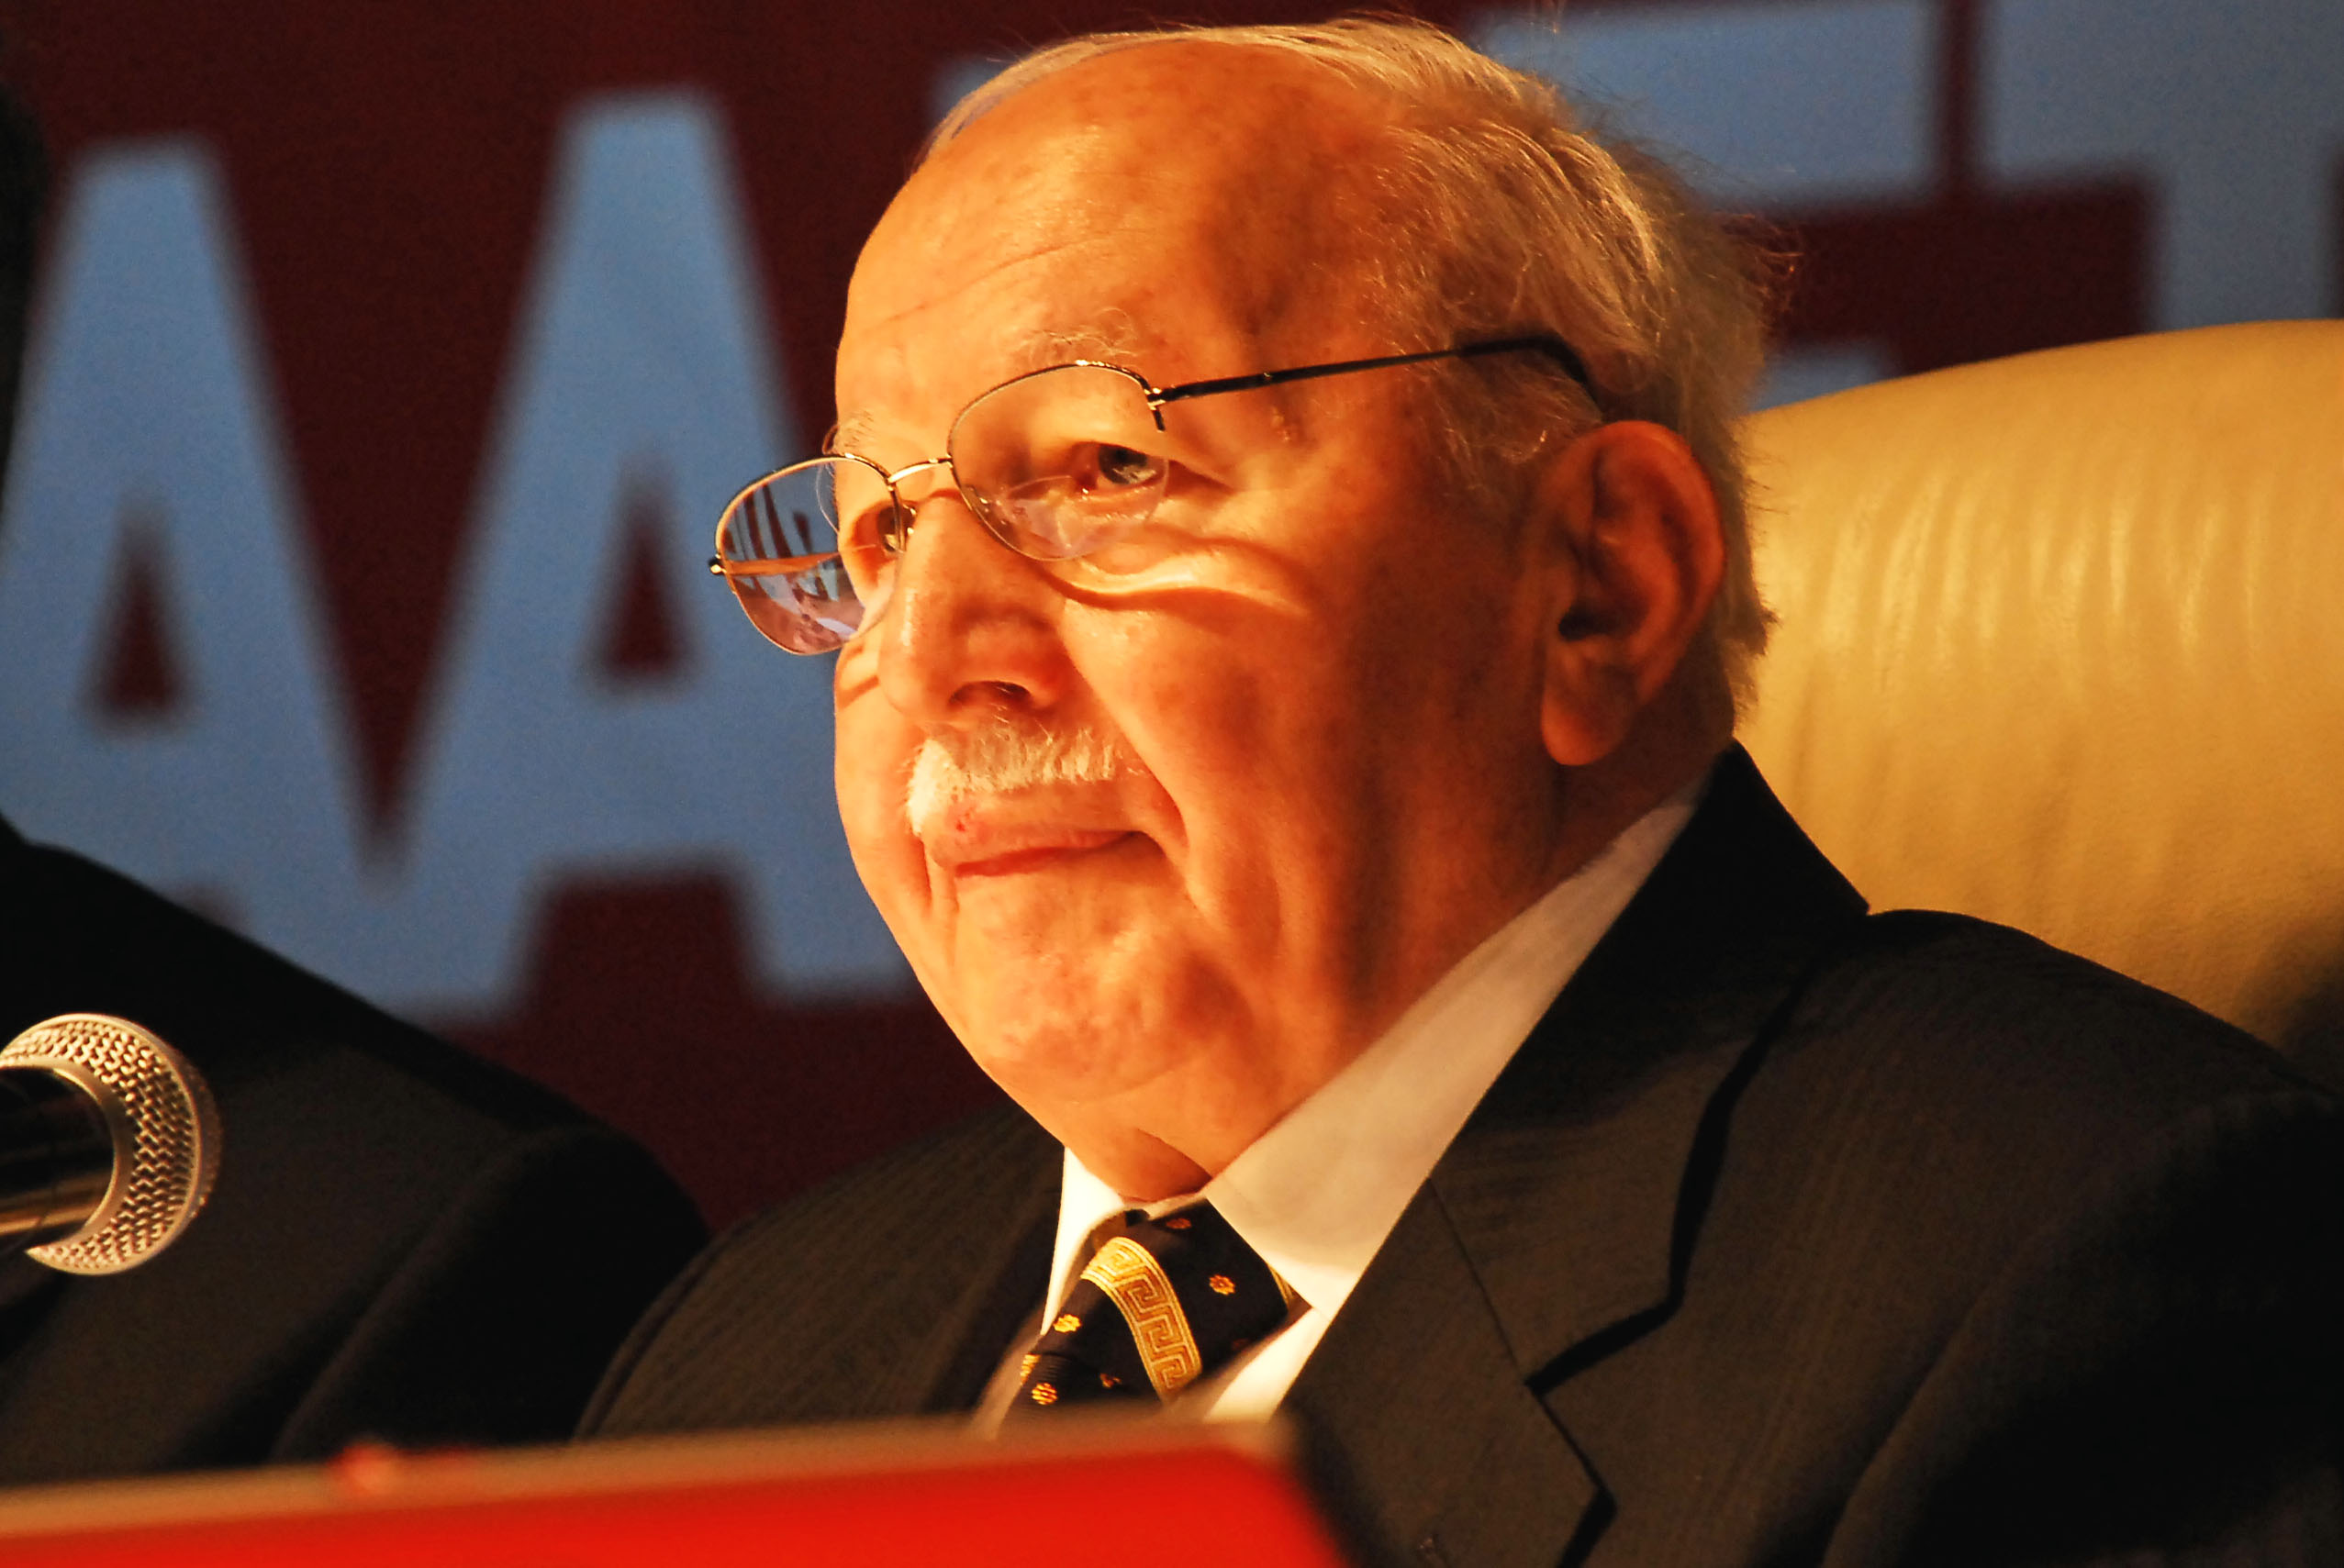 http://upload.wikimedia.org/wikipedia/commons/0/0e/Necmettin-Erbakan.jpg